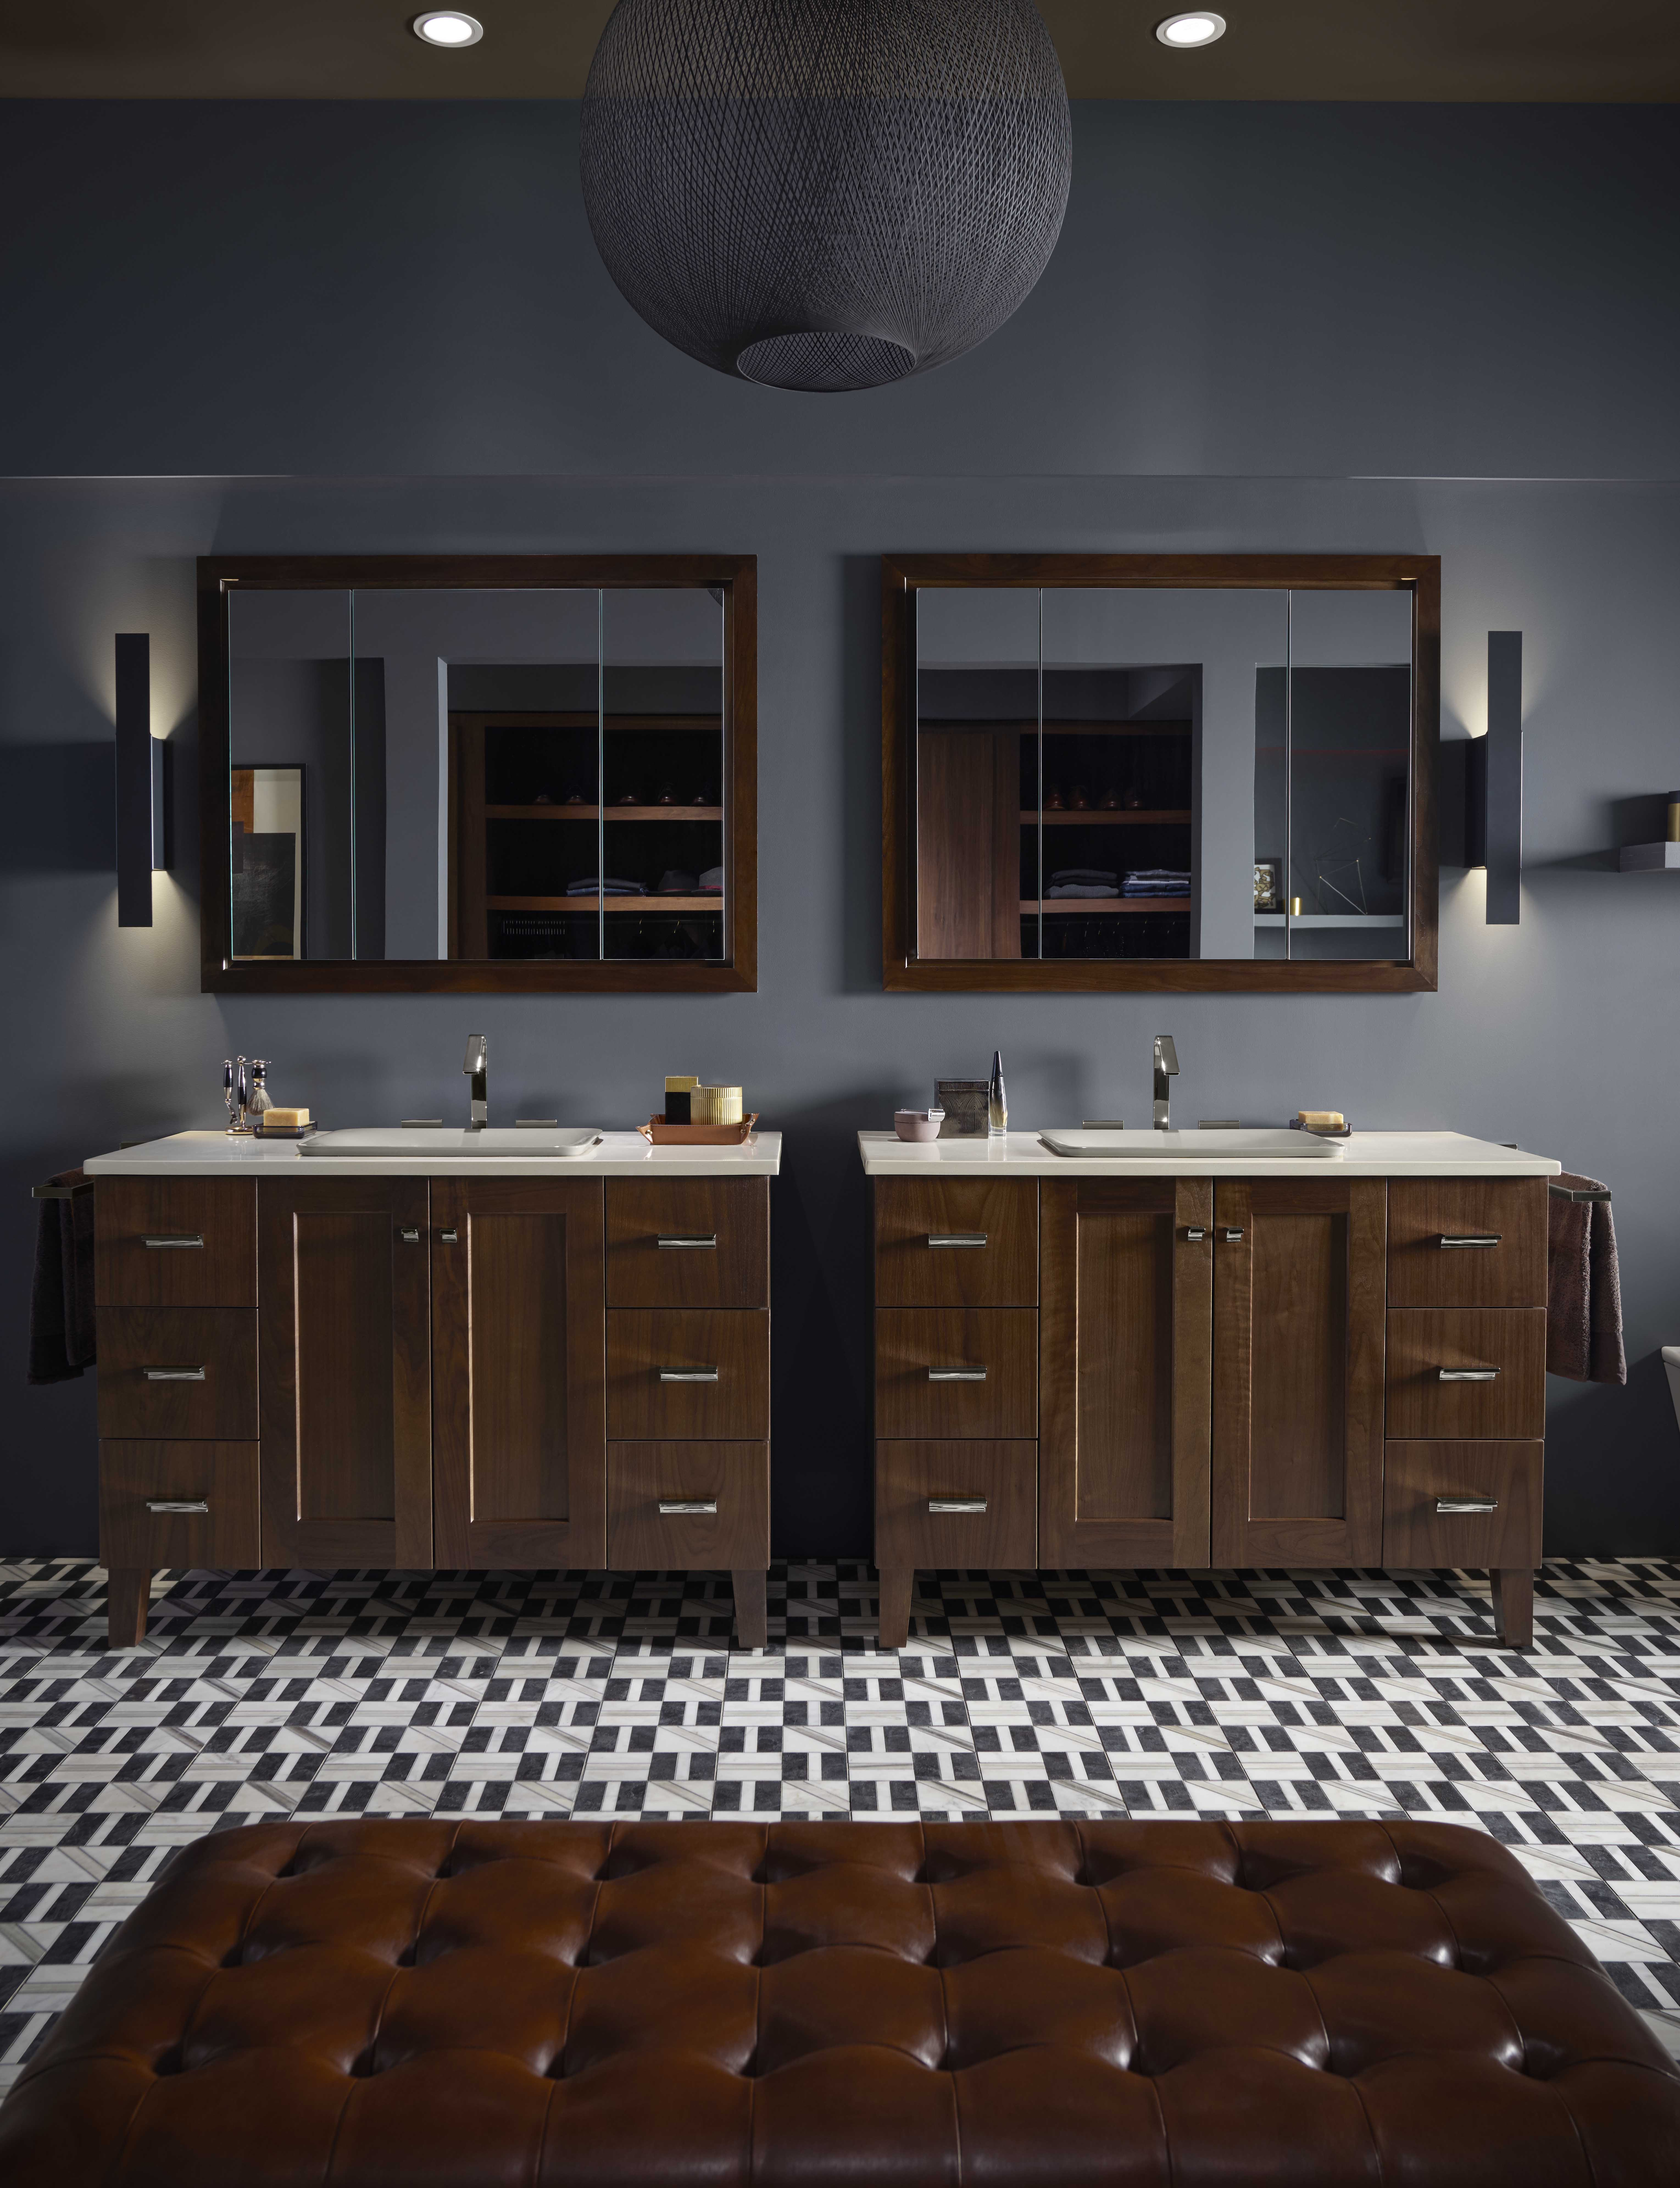 Poplin® Vanity     Poplin medicine cabinet surround     Verdera® medicine cabinet     Loure® faucet     Dual styling spaces allow couples to enjoy one another's company without getting in one another's way.